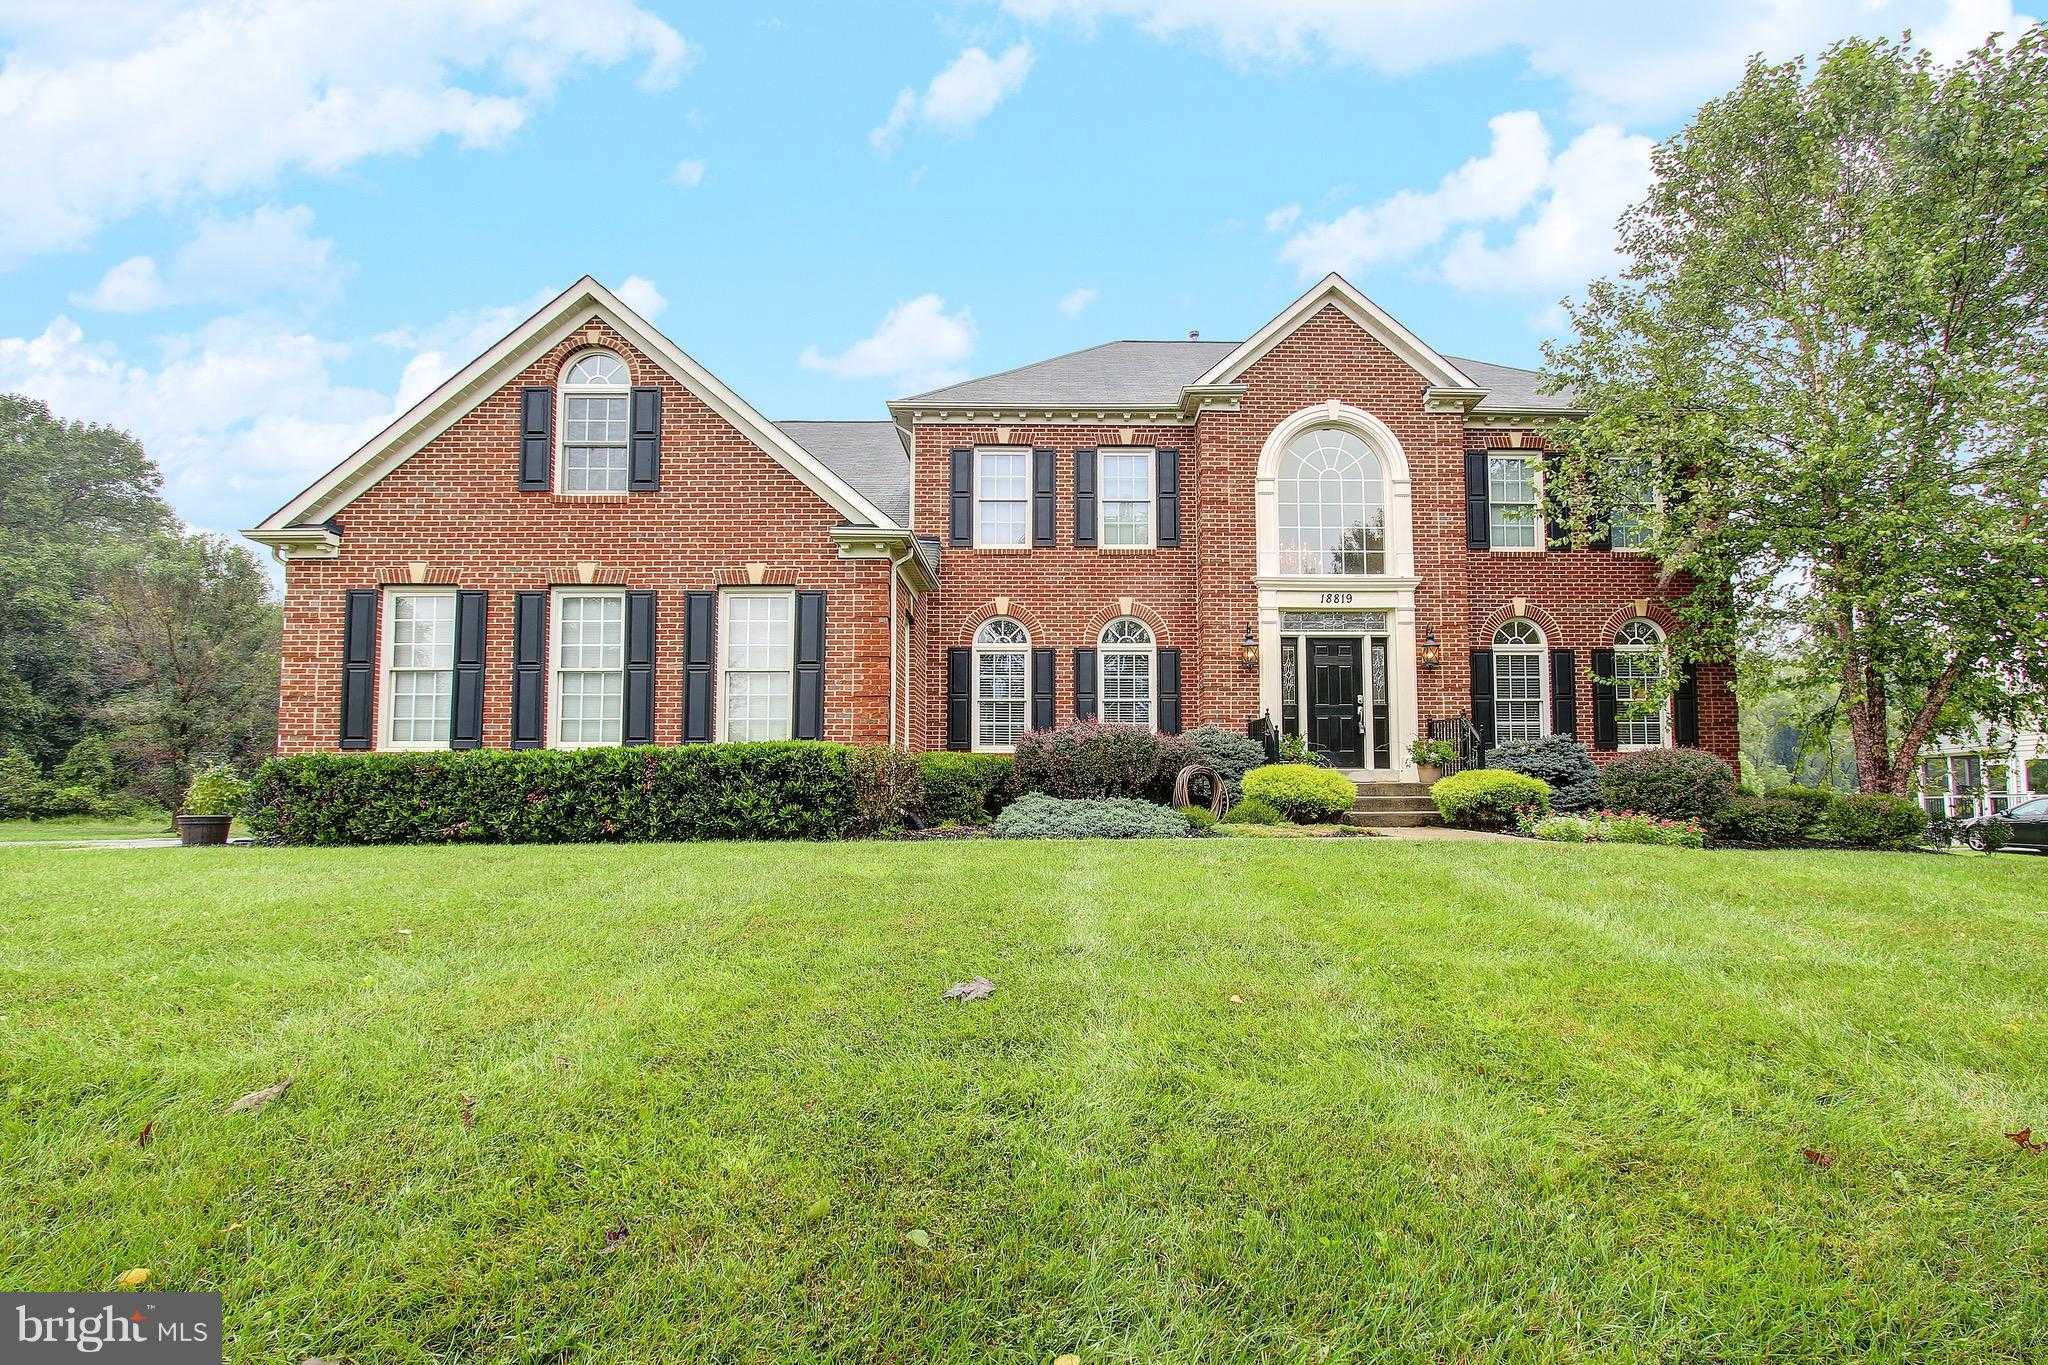 Brookeville Homes for Sale: Montgomery County Real Estate